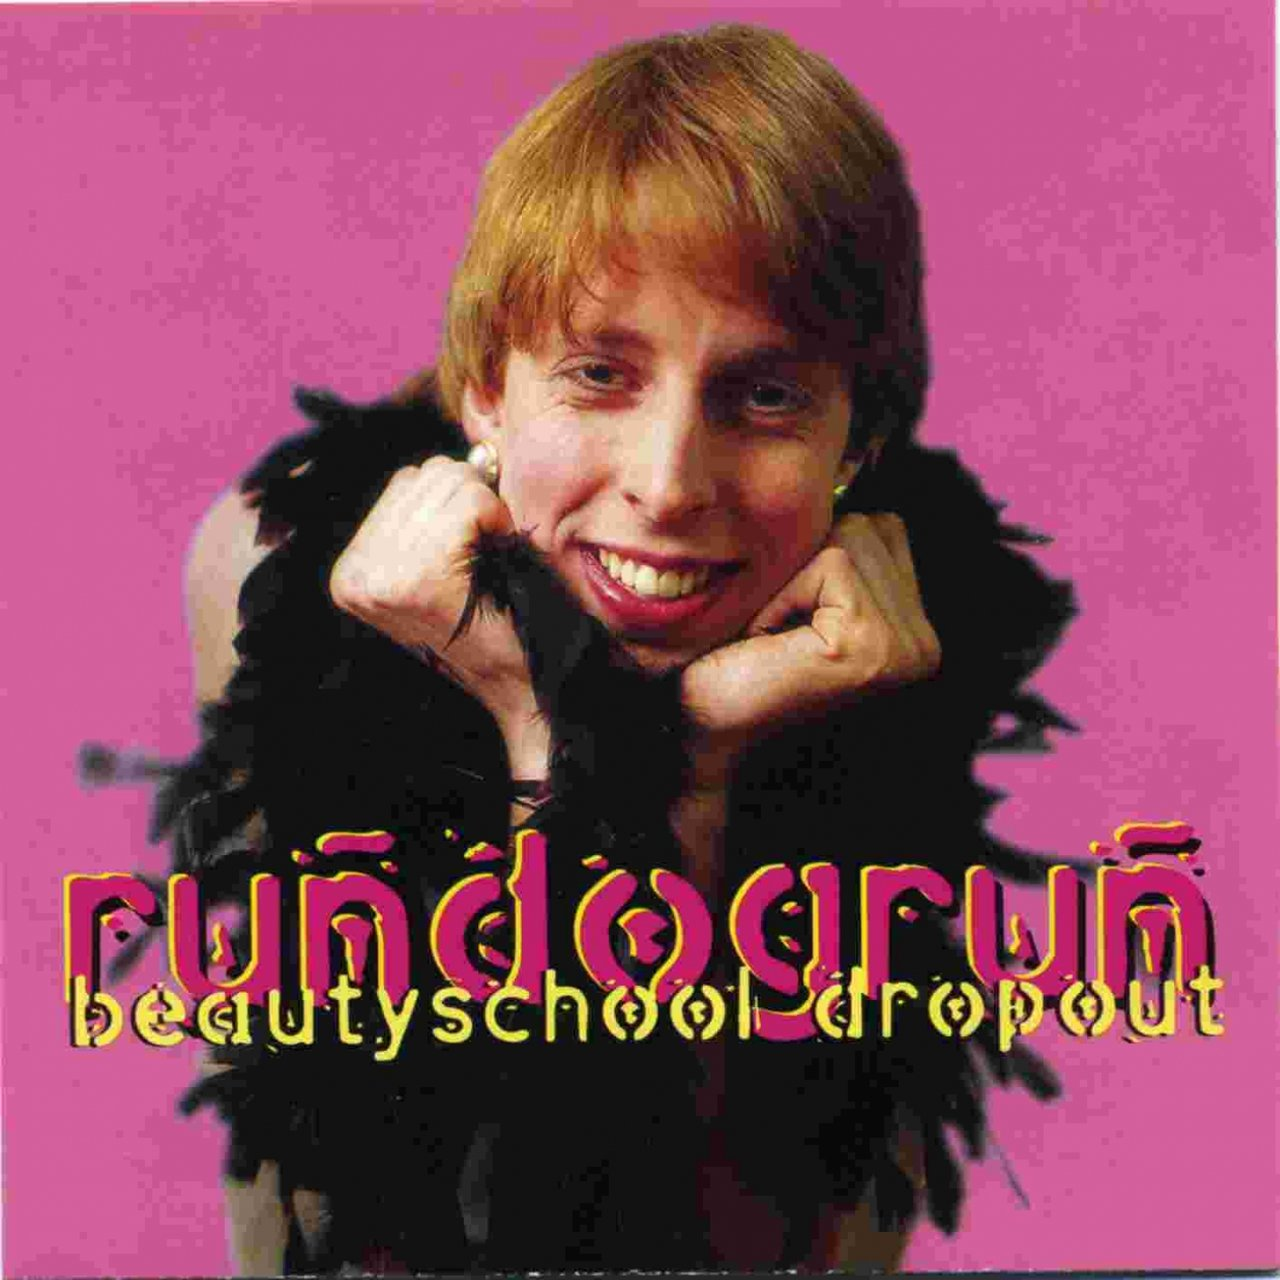 Beautyschool Dropout